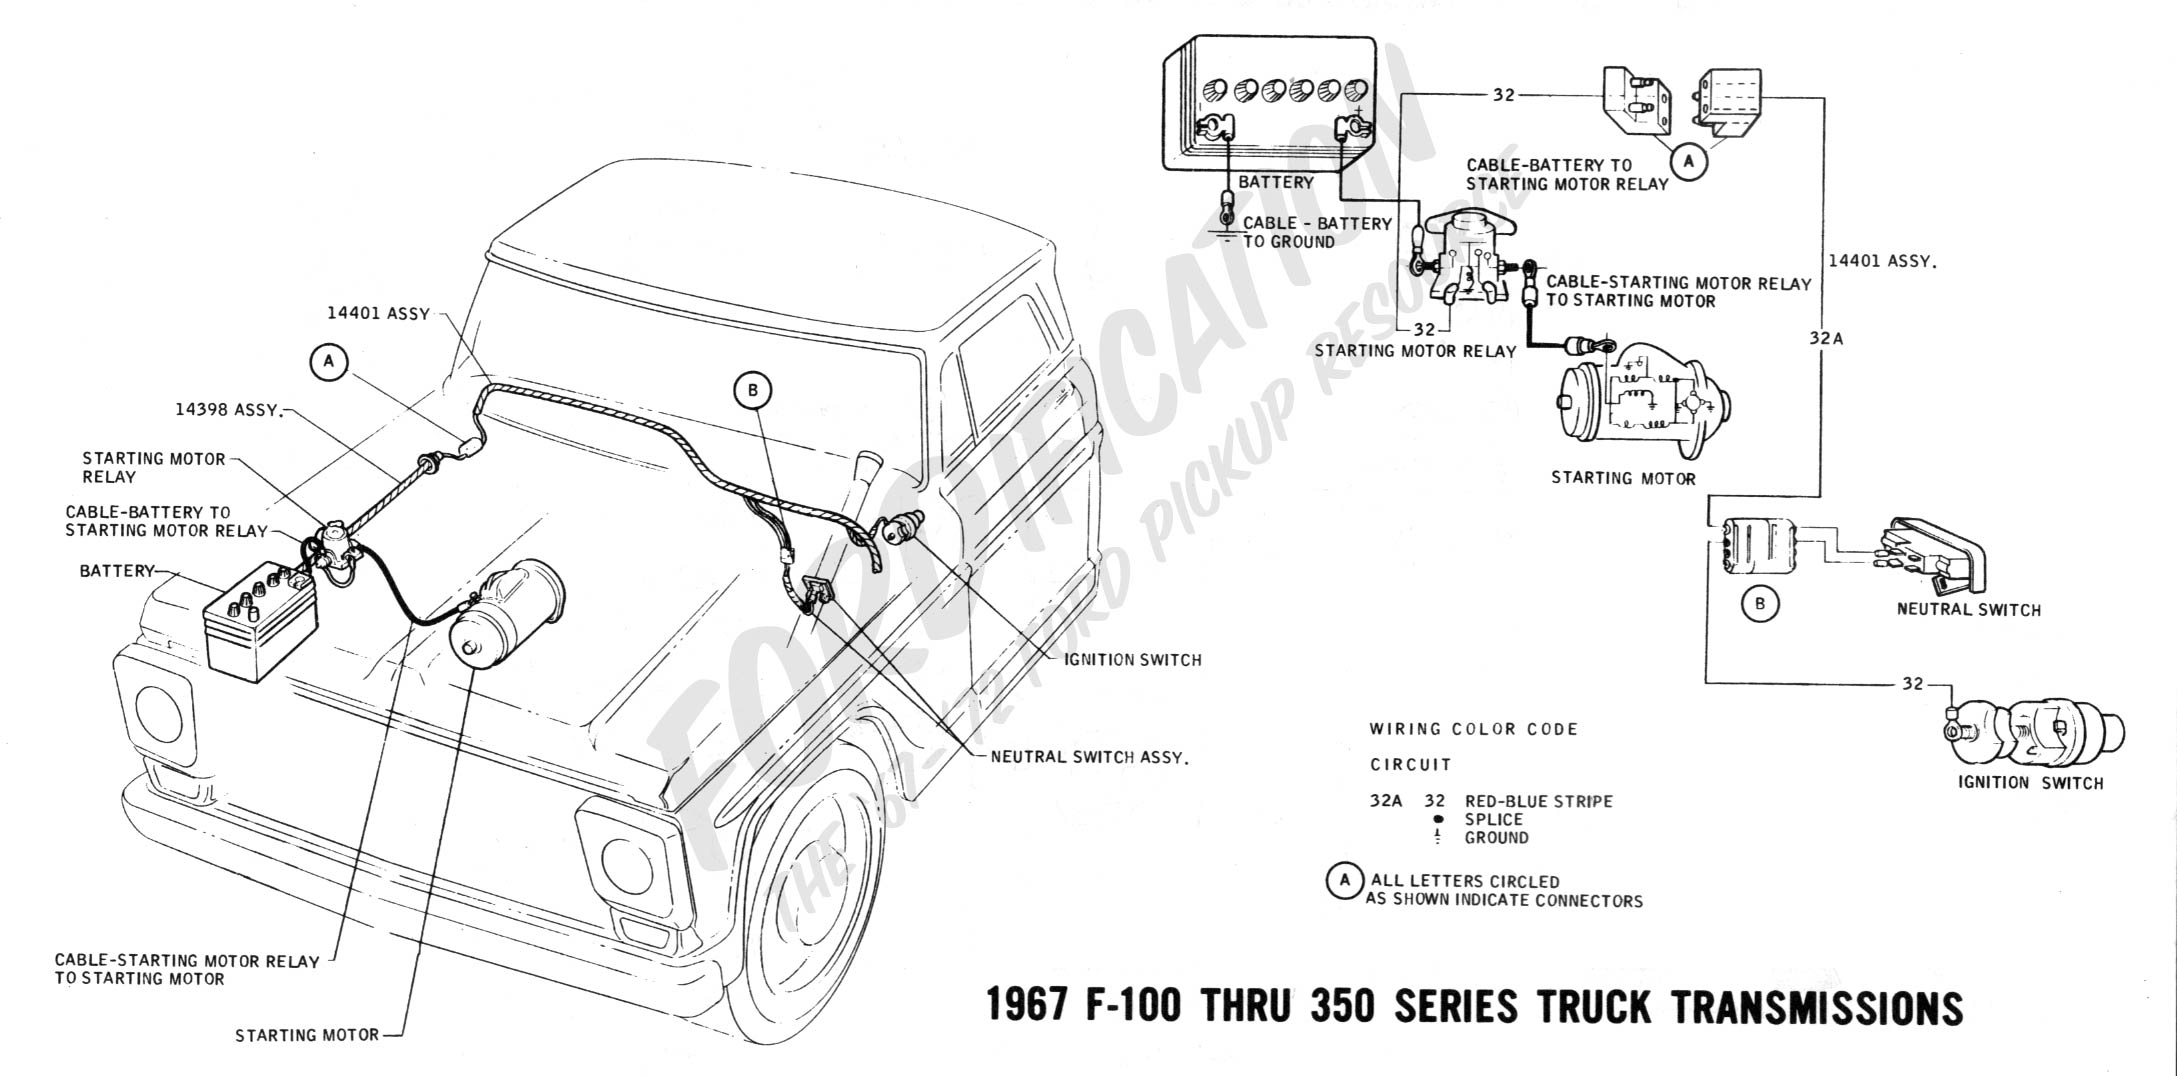 79 f150 windshield wiper wiring diagrams wiring diagram u2022 rh msblog co  1989 BMW 325I Wiring